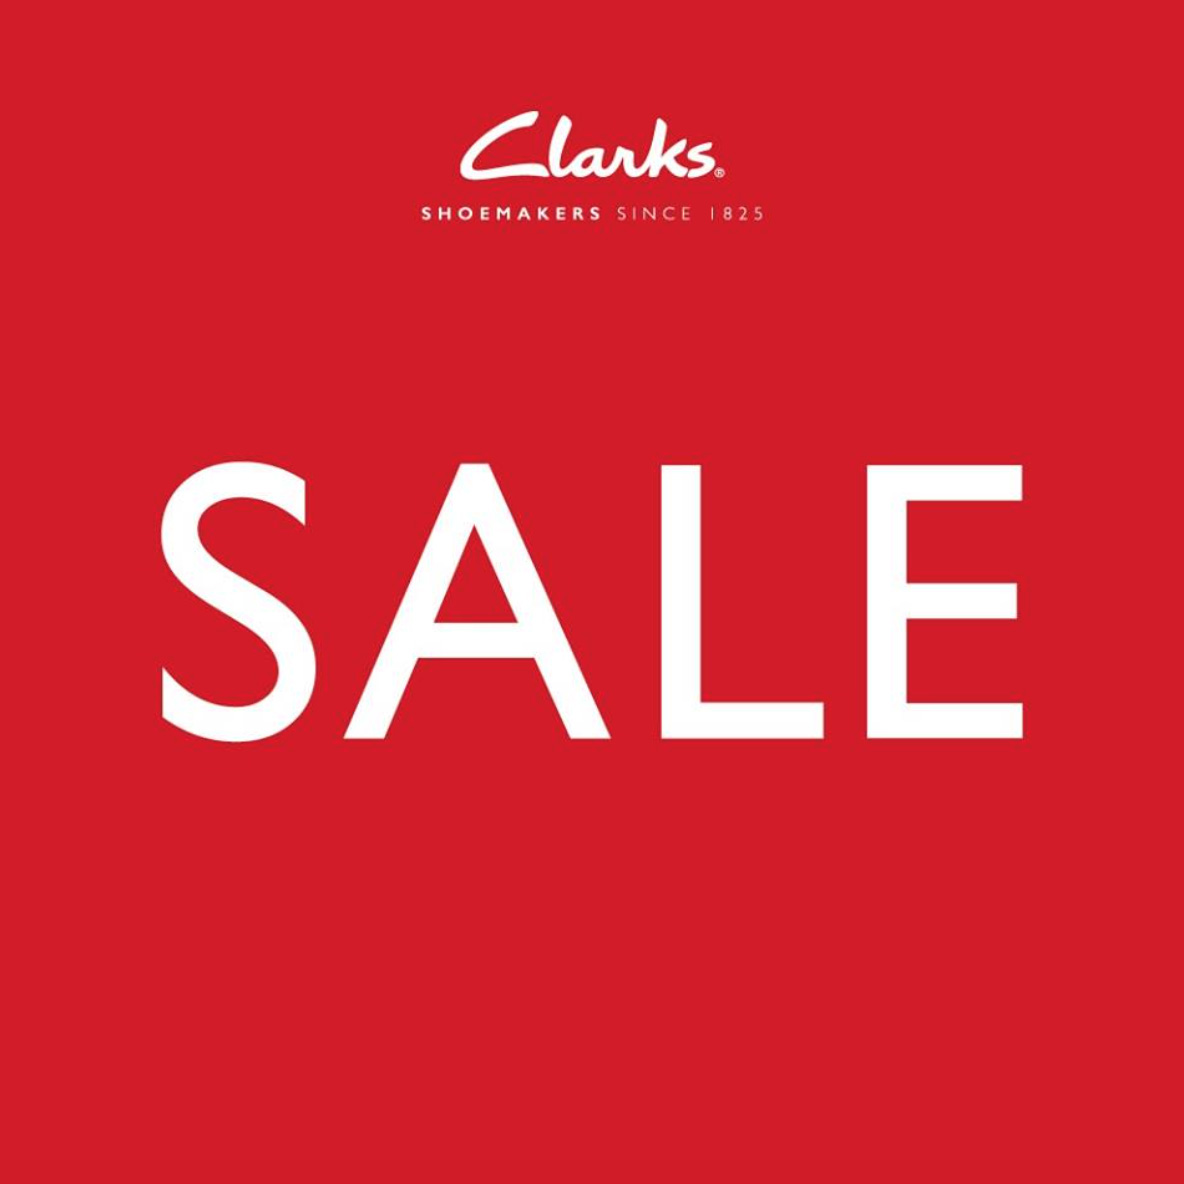 e869b61bb 60% Off From Clarks - JEM Singapore